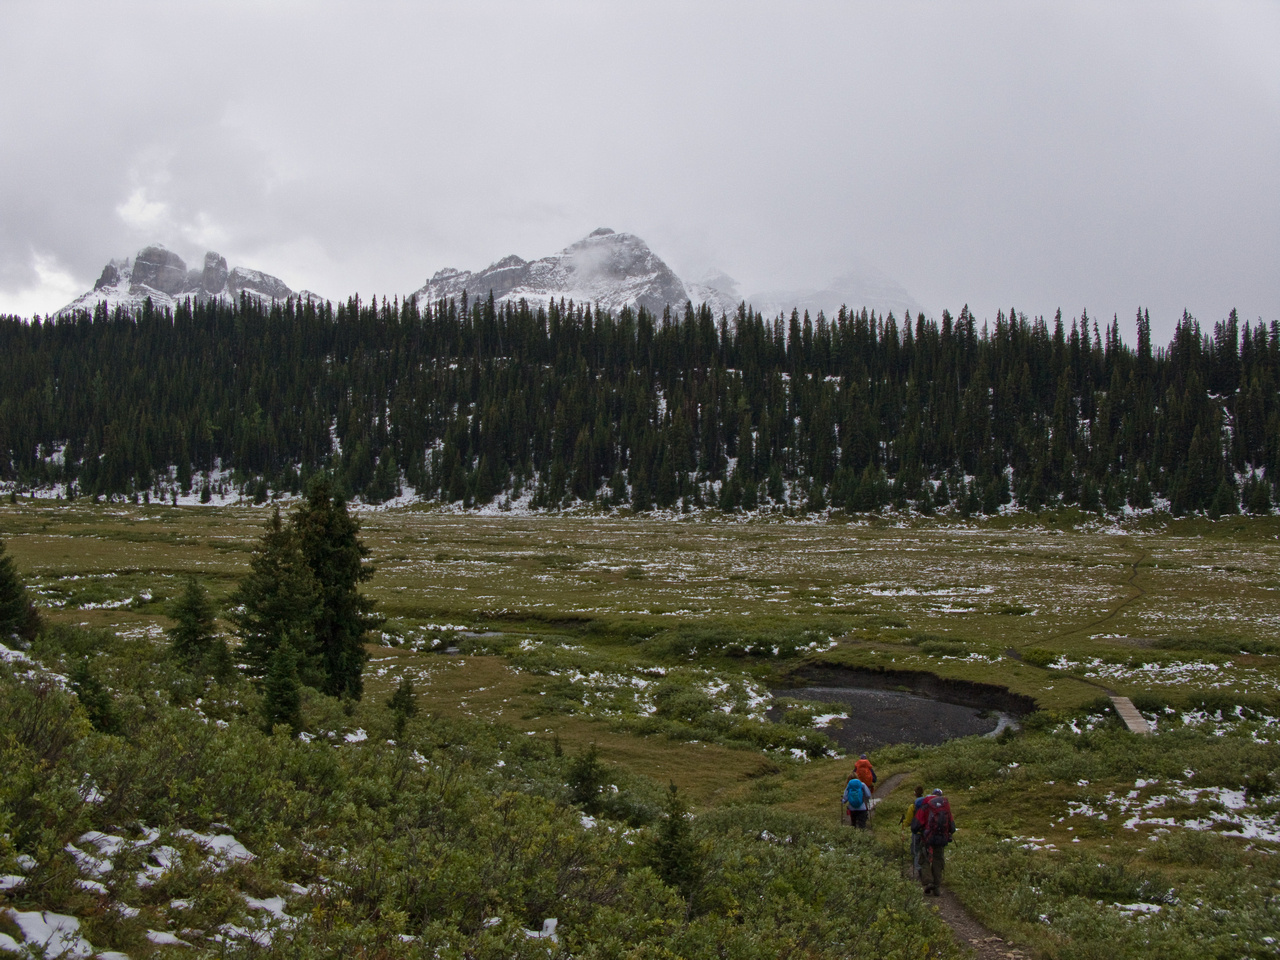 Sunshine Meadows at last. 3km to go.